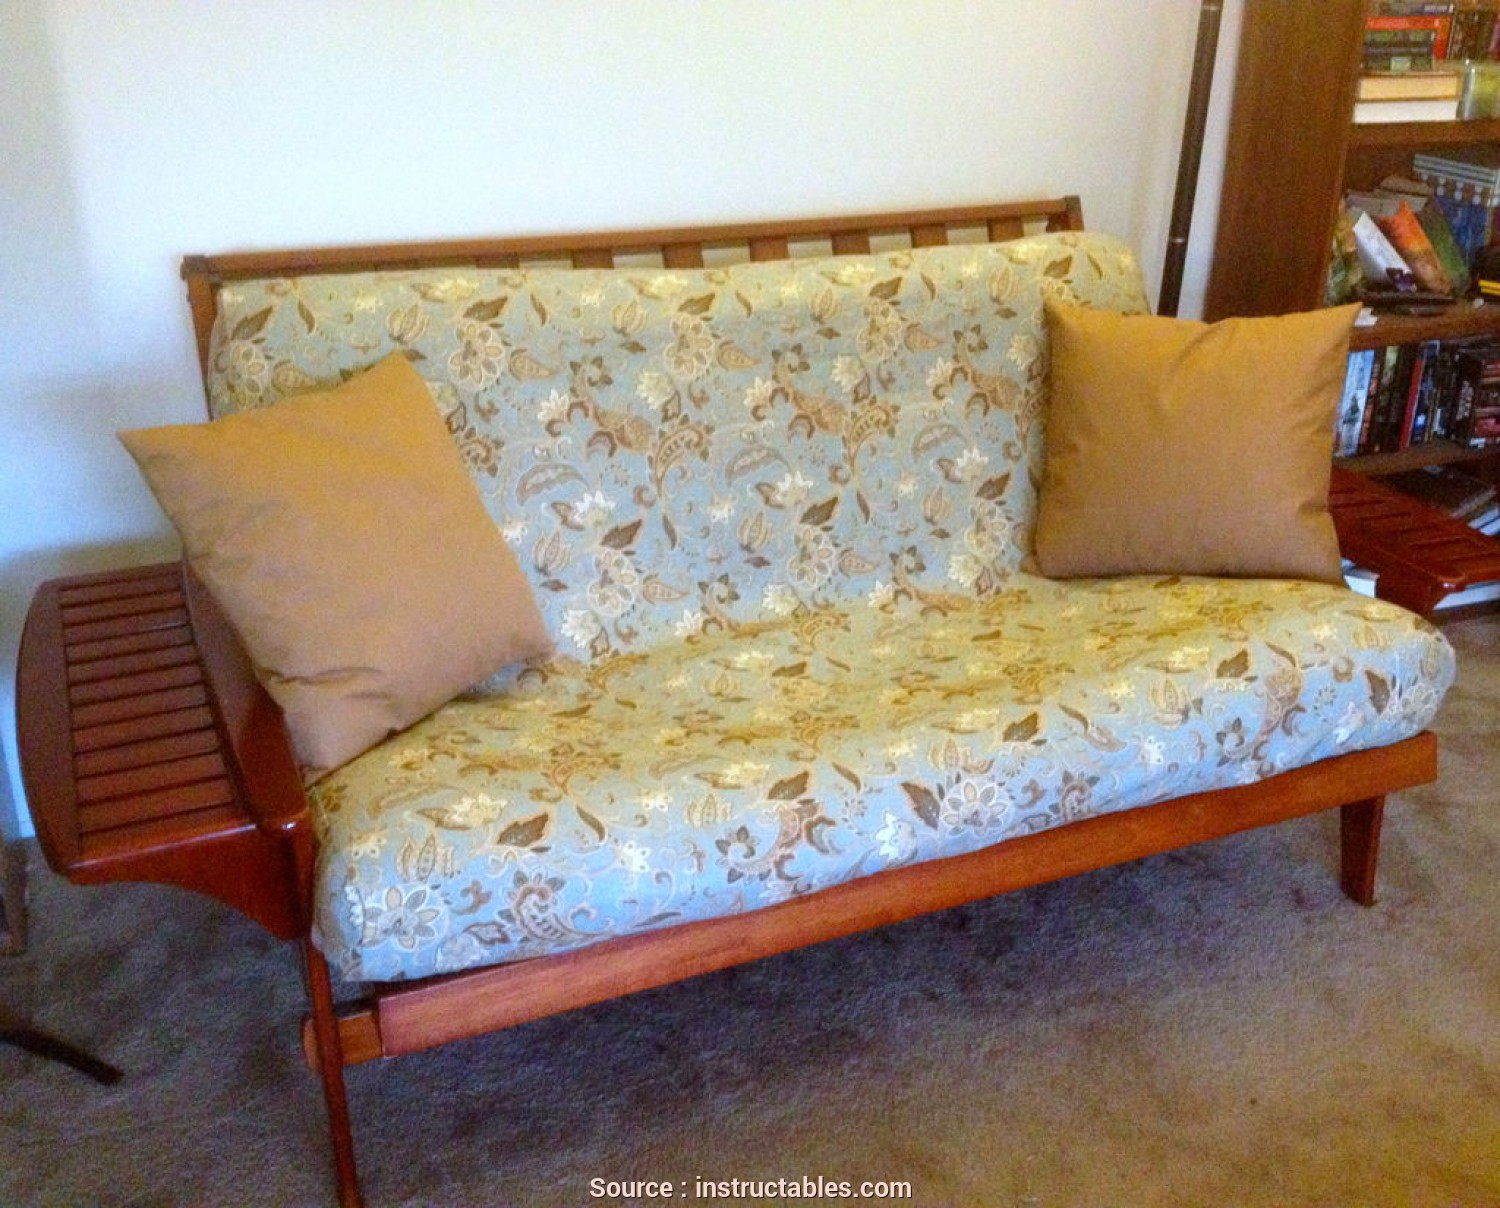 Washing Ikea Futon Cover, Bello Futon Easy-Off Slipcover: 6 Steps (With Pictures)